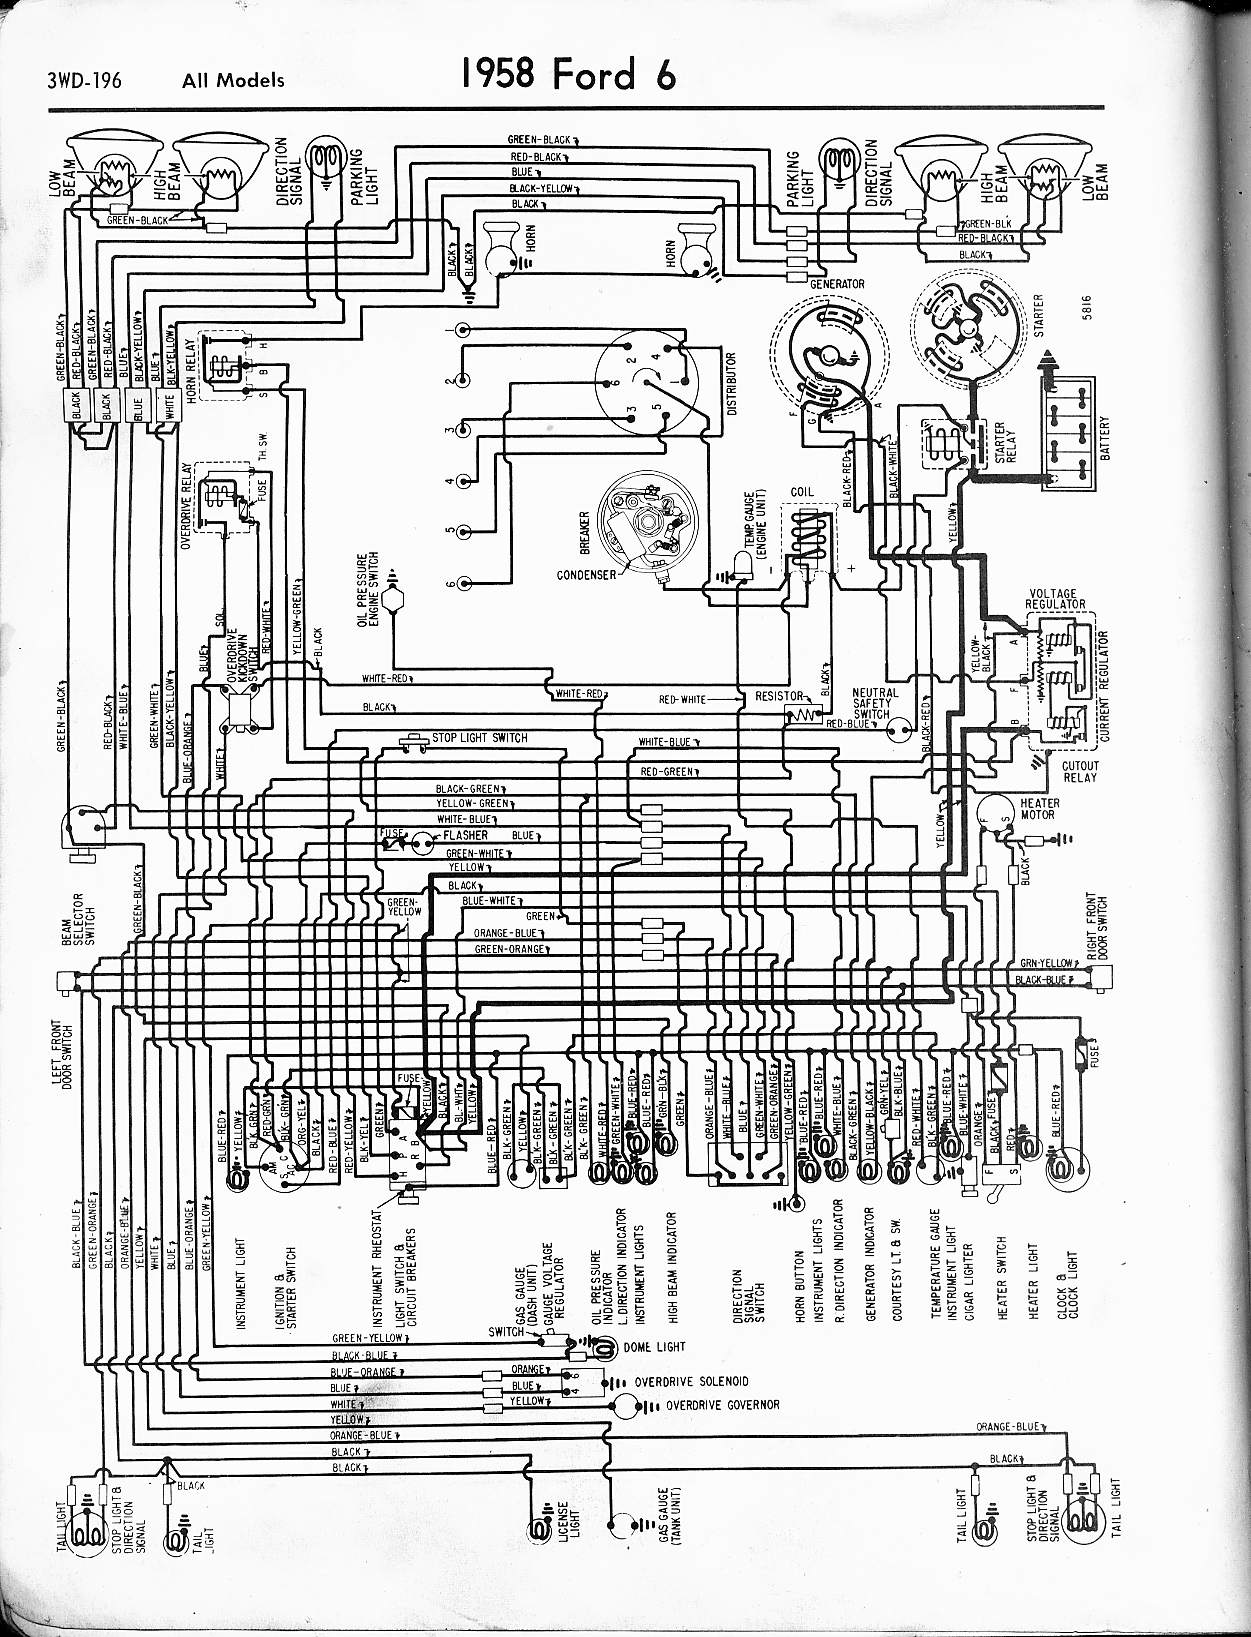 MWire5765 196 57 65 ford wiring diagrams ford truck wiring diagrams at gsmportal.co